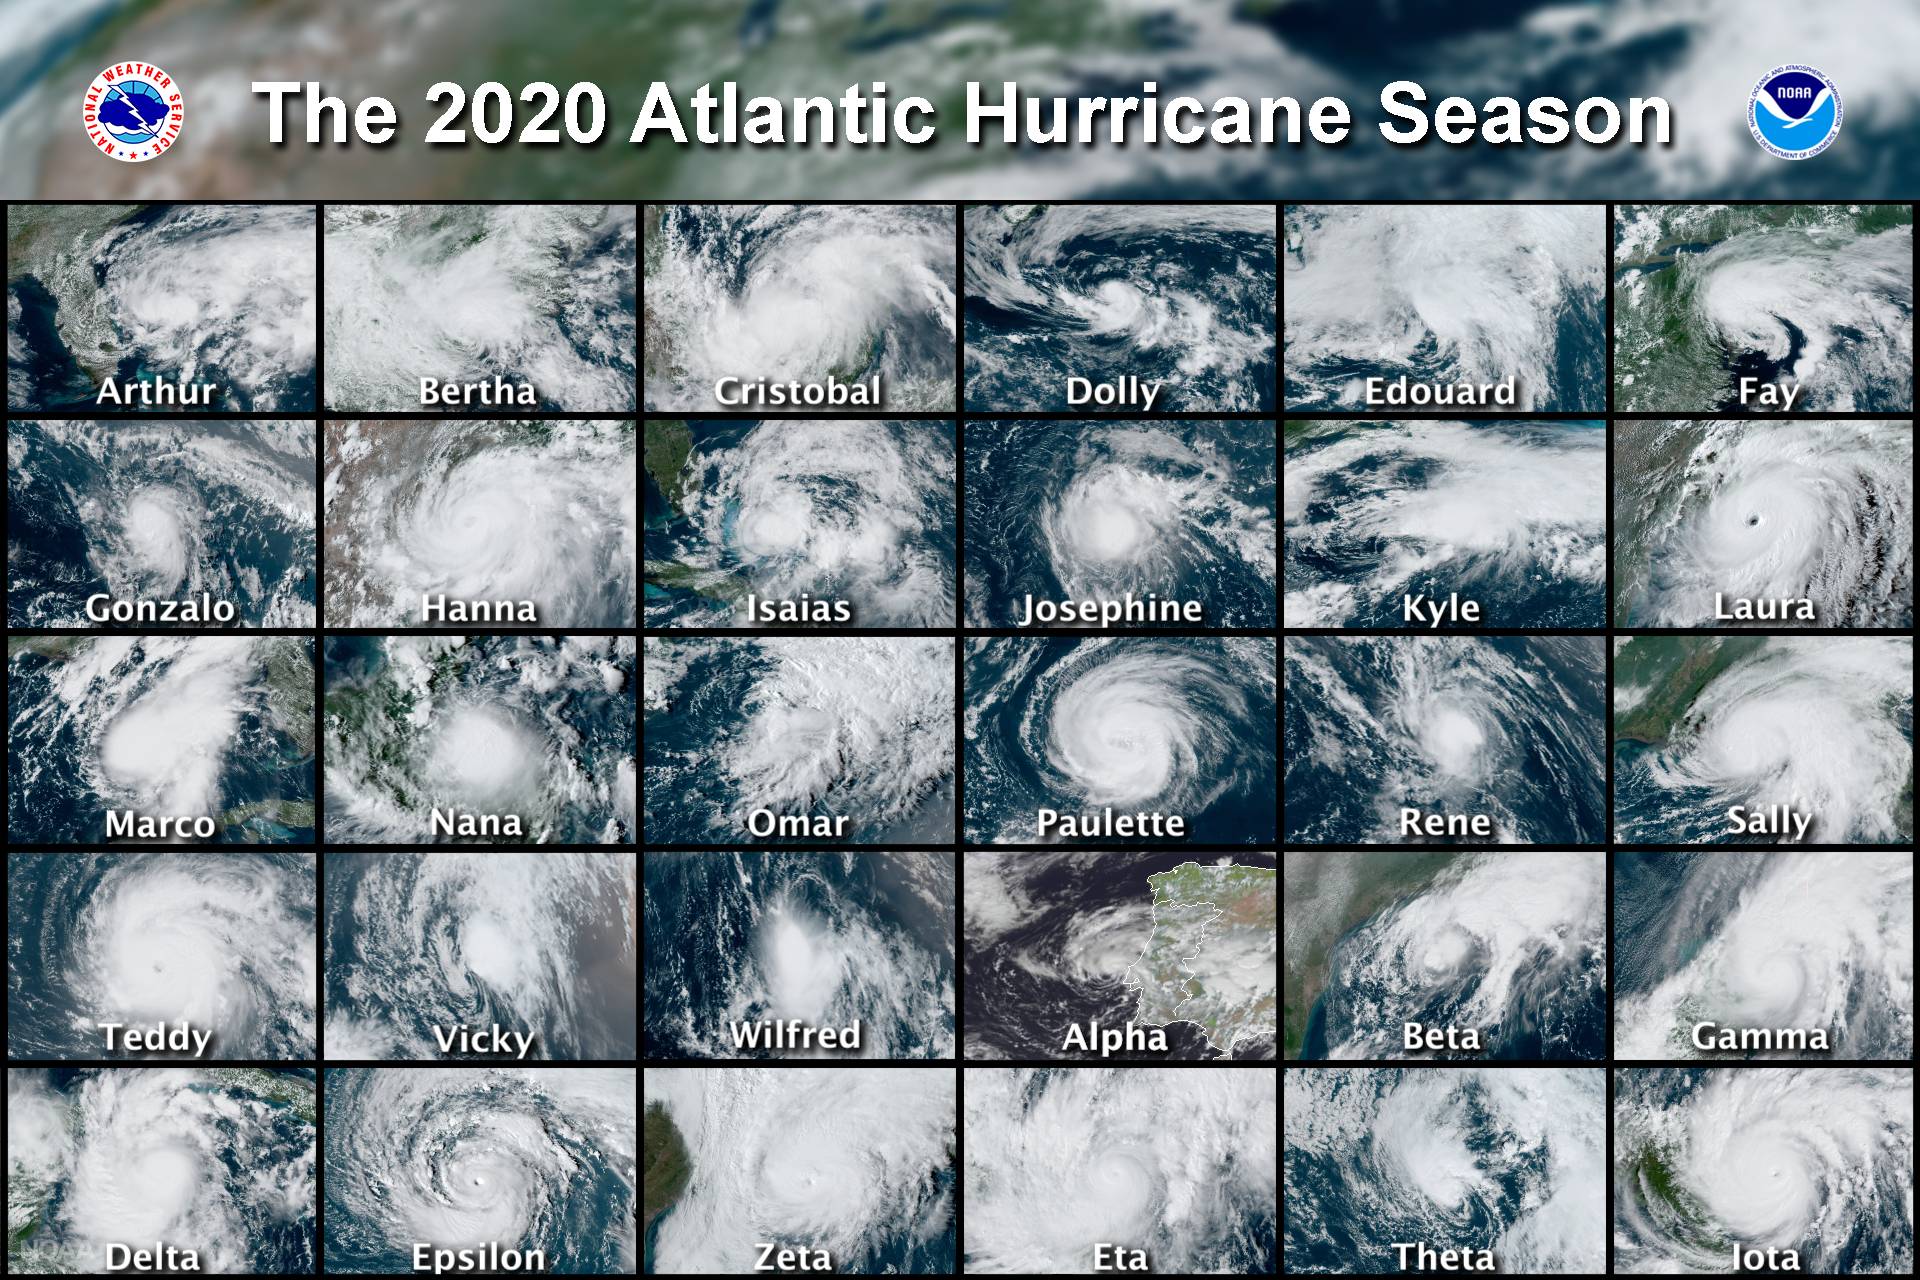 A Chat with NOAA's Lead Seasonal Hurricane Forecaster